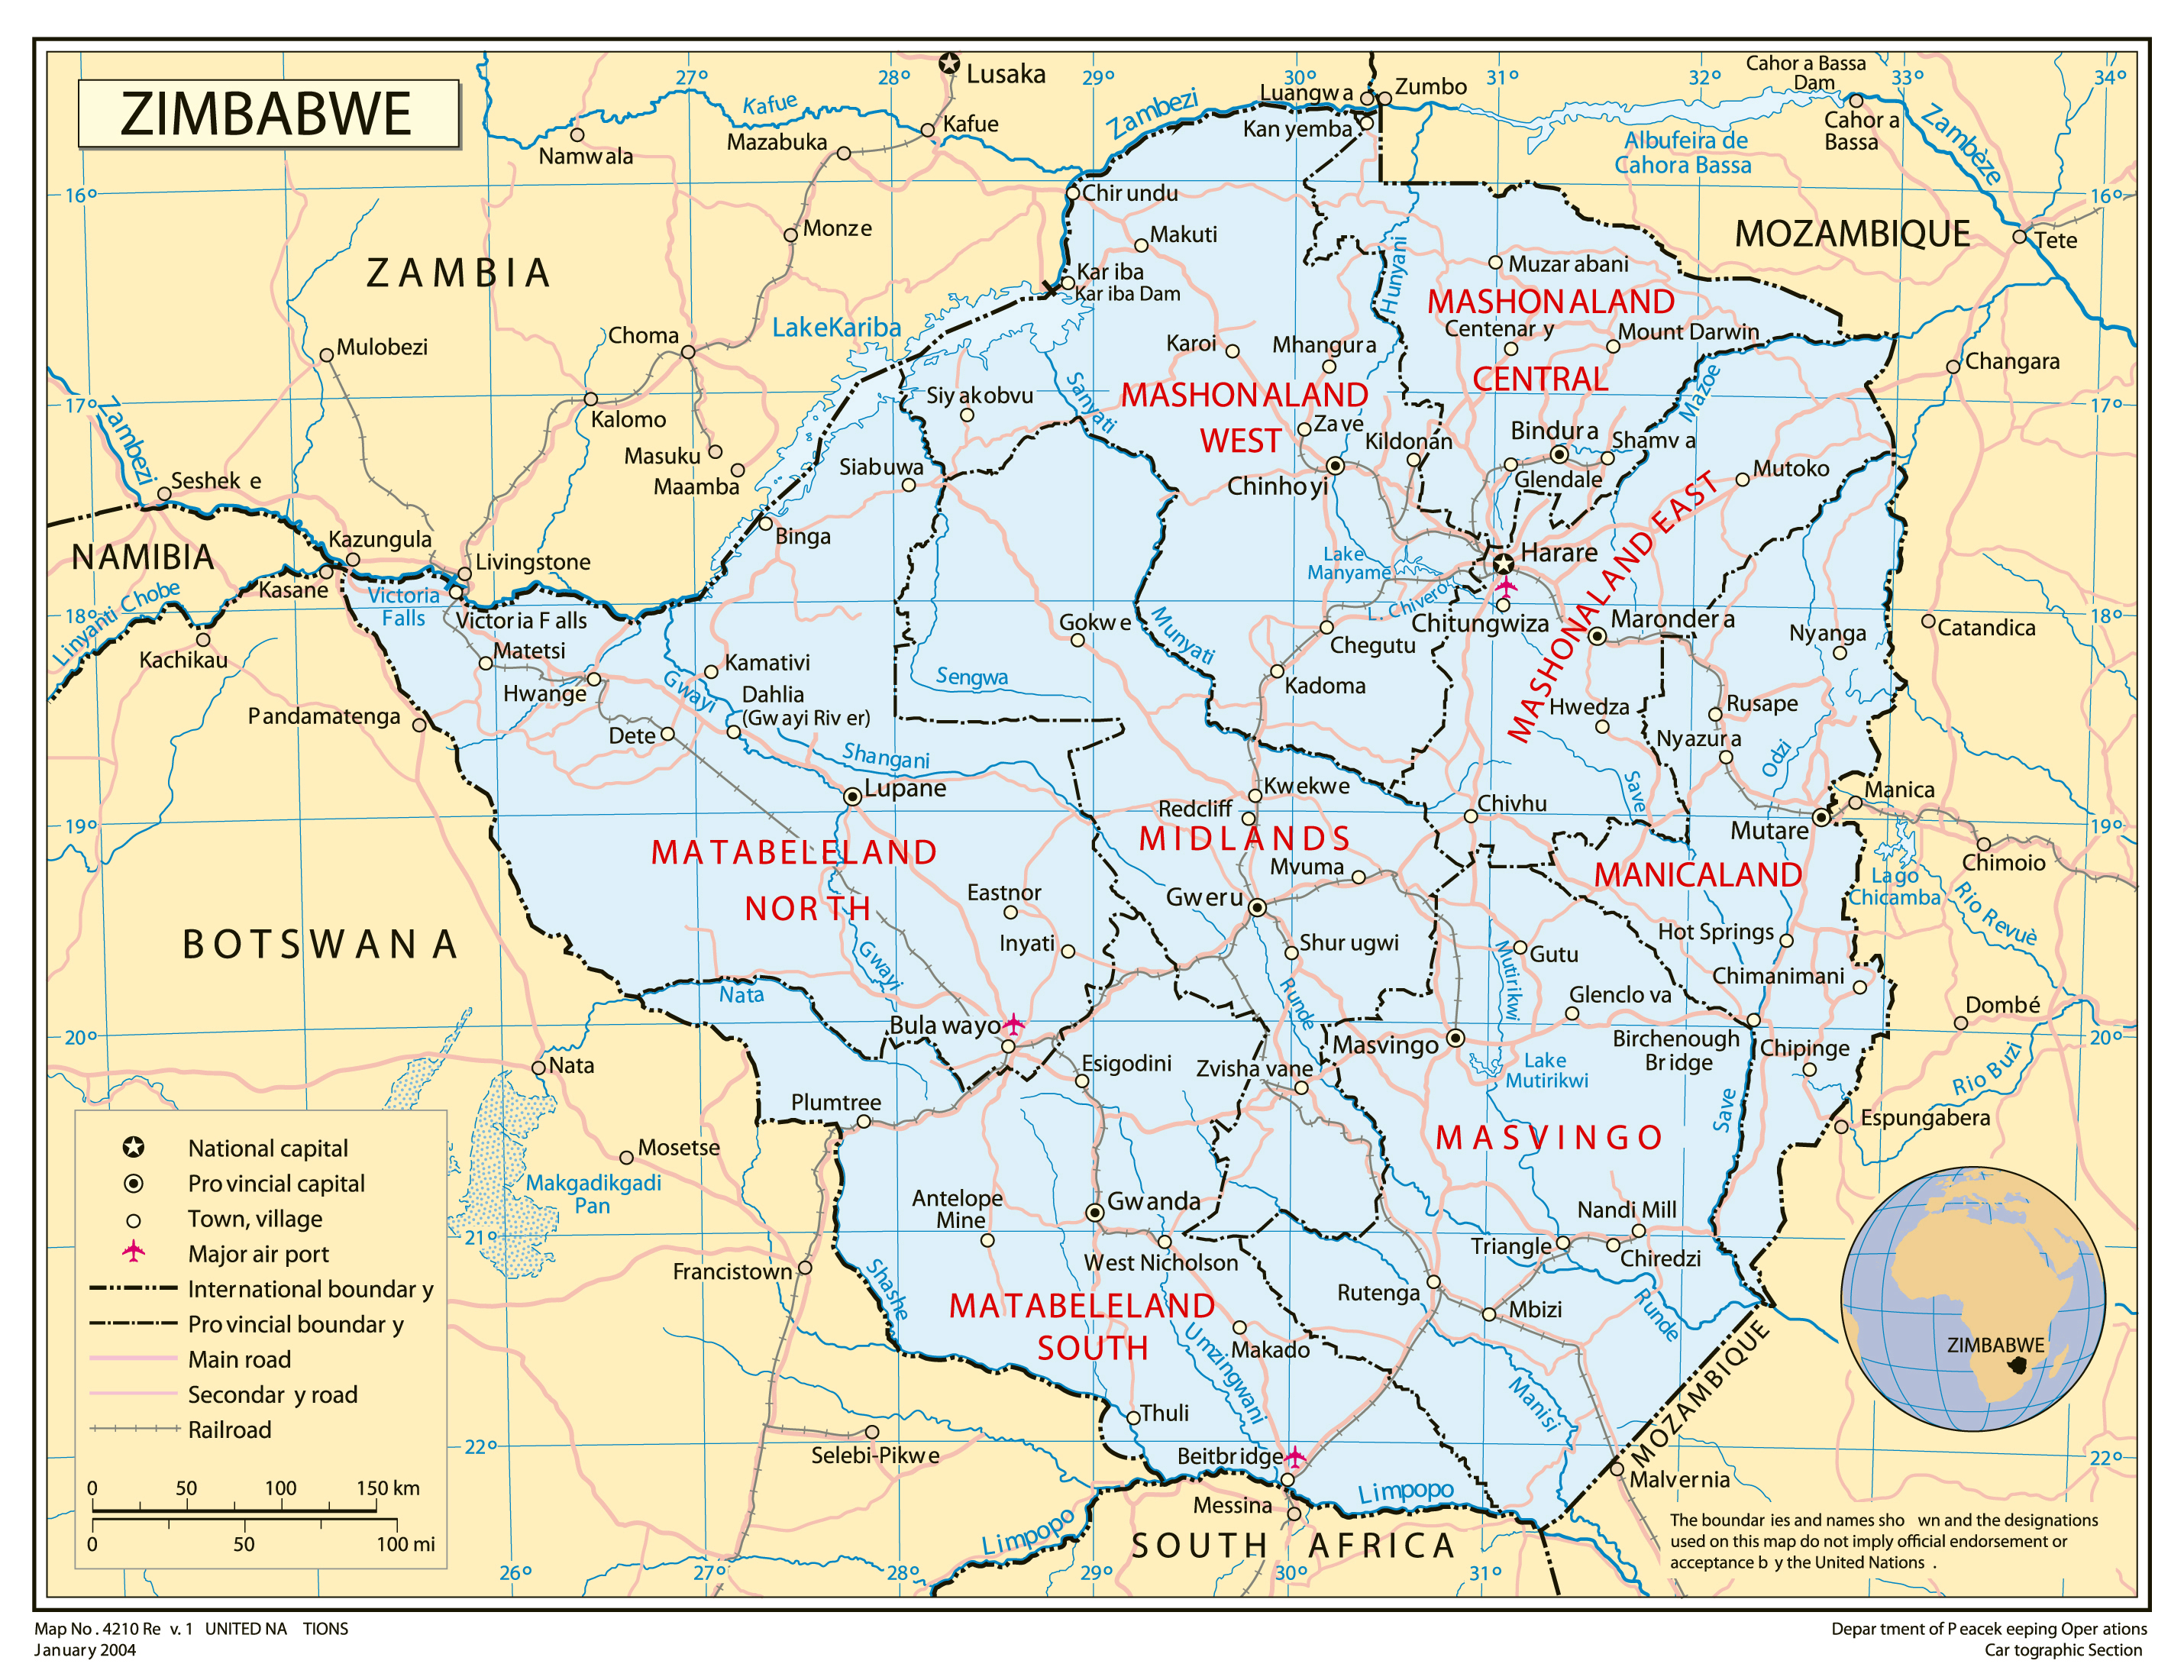 Full political map of Zimbabwe Zimbabwe full political map